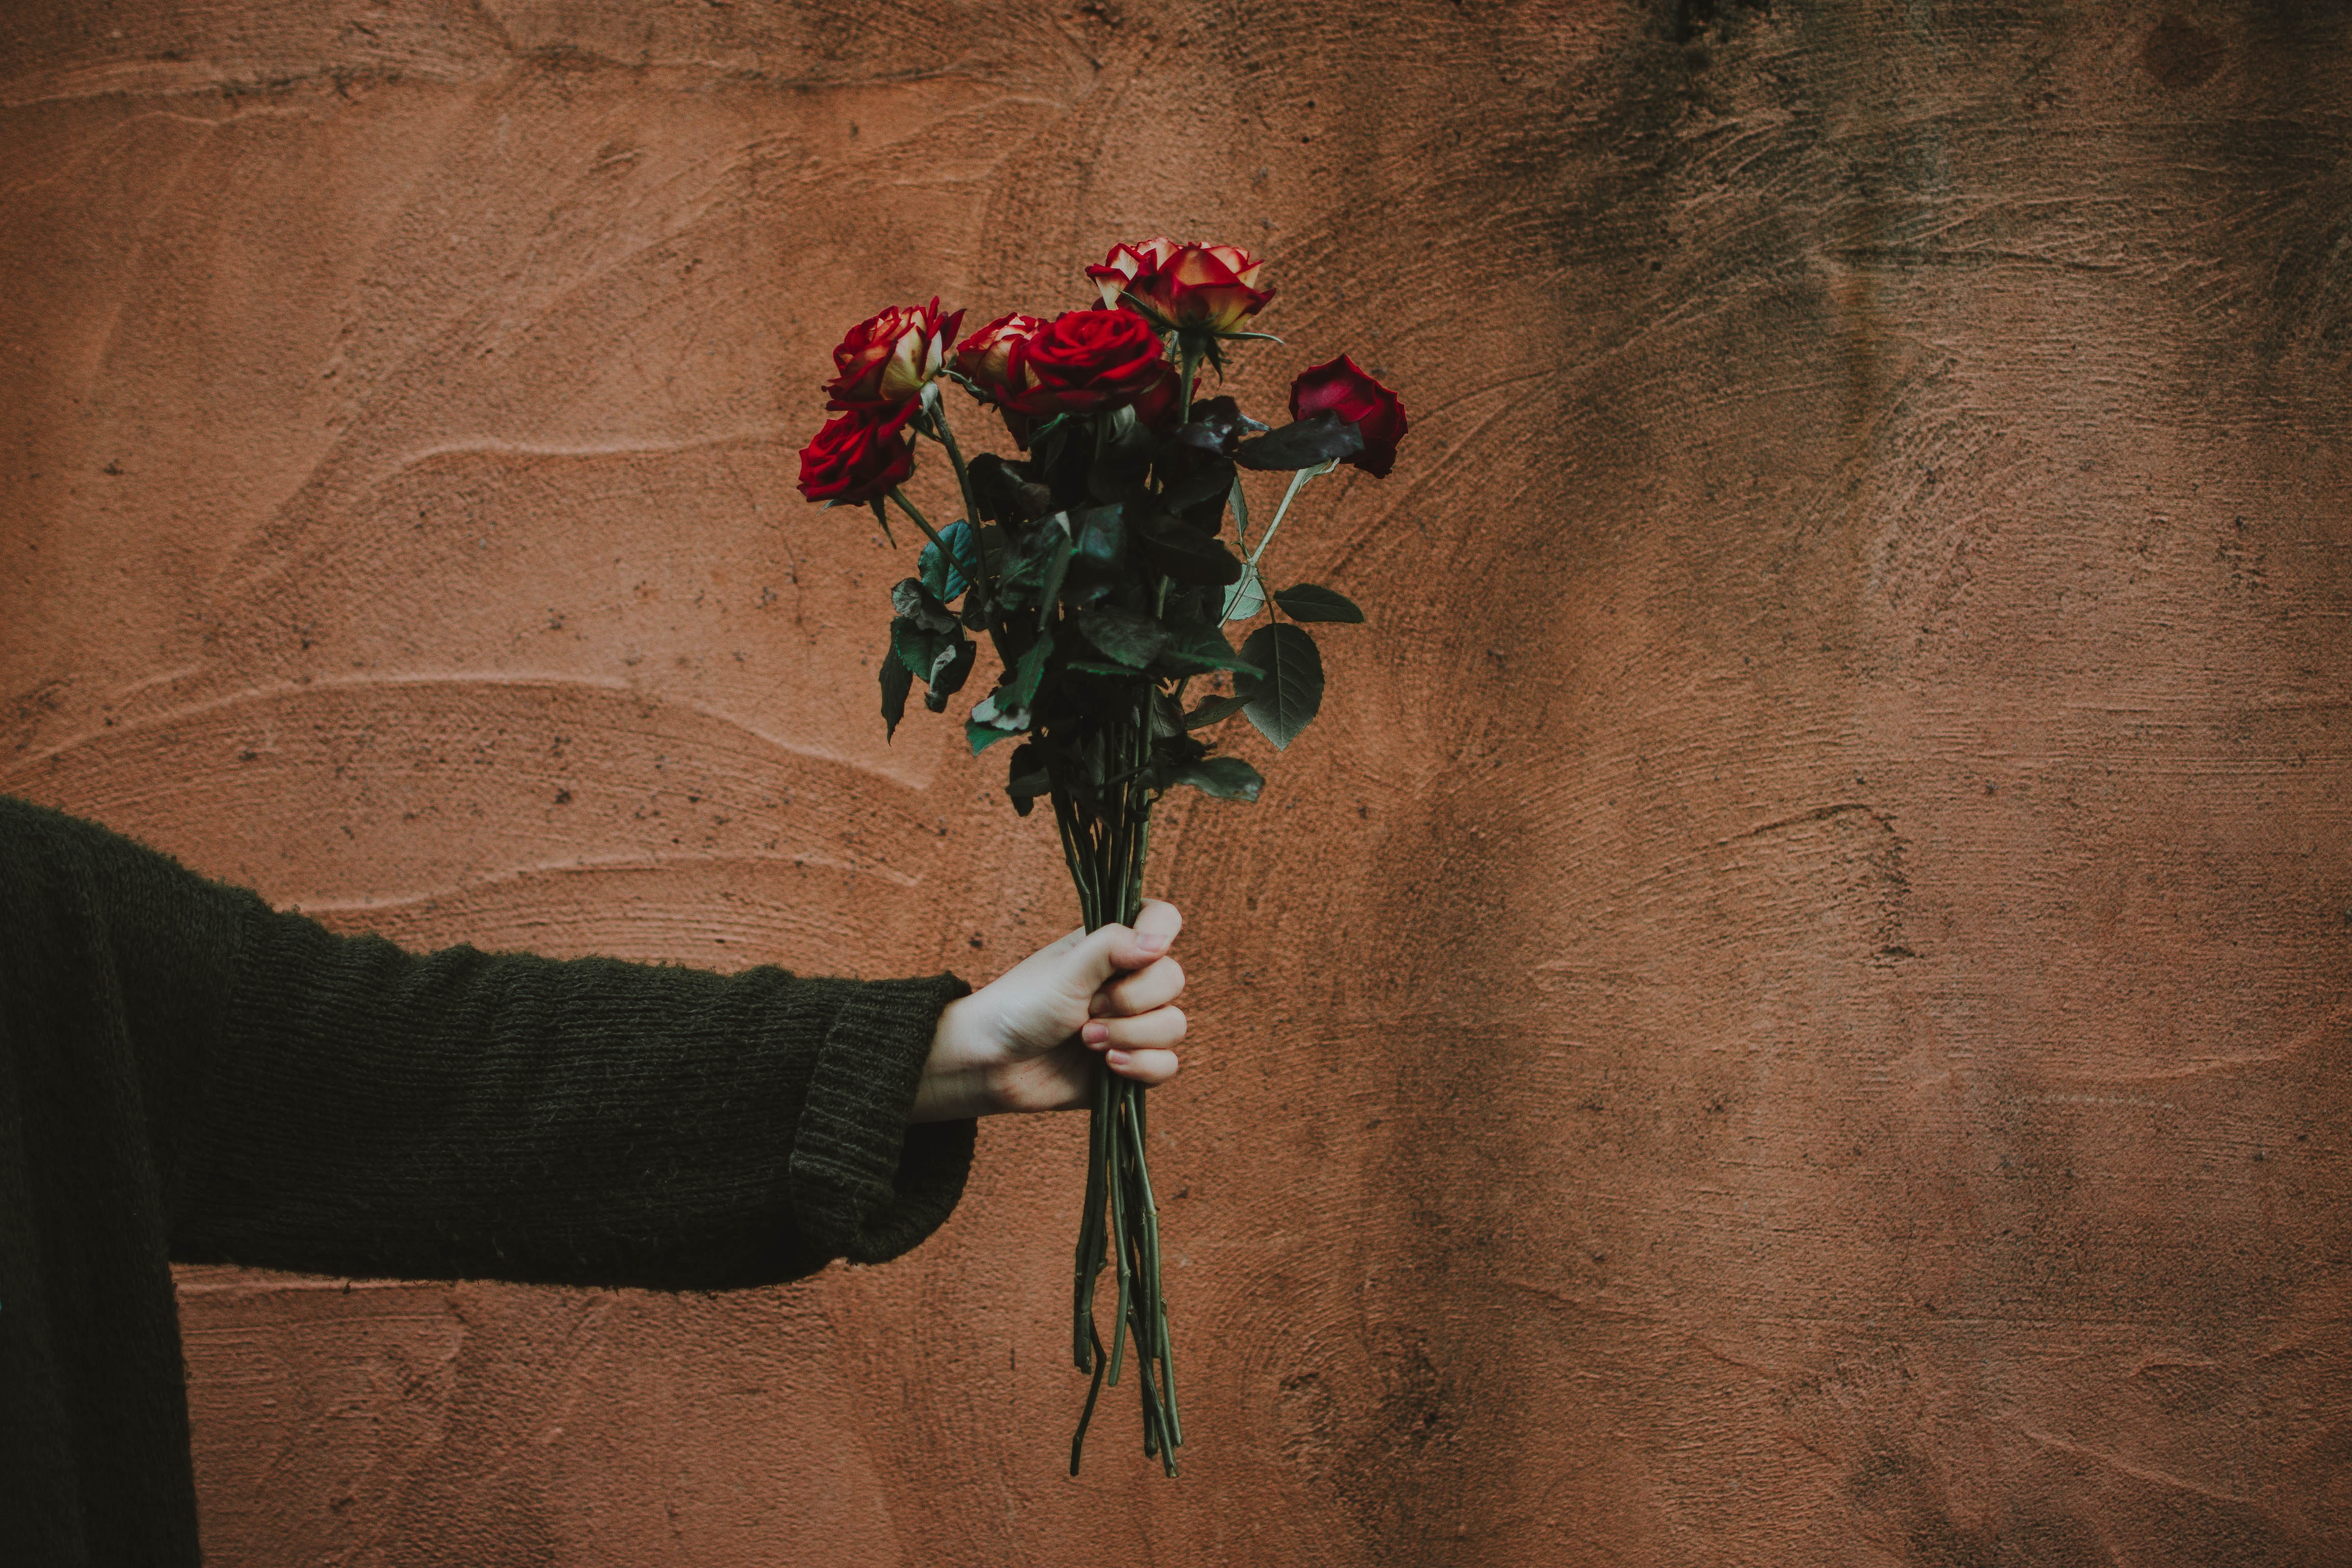 person in sweater holding red roses